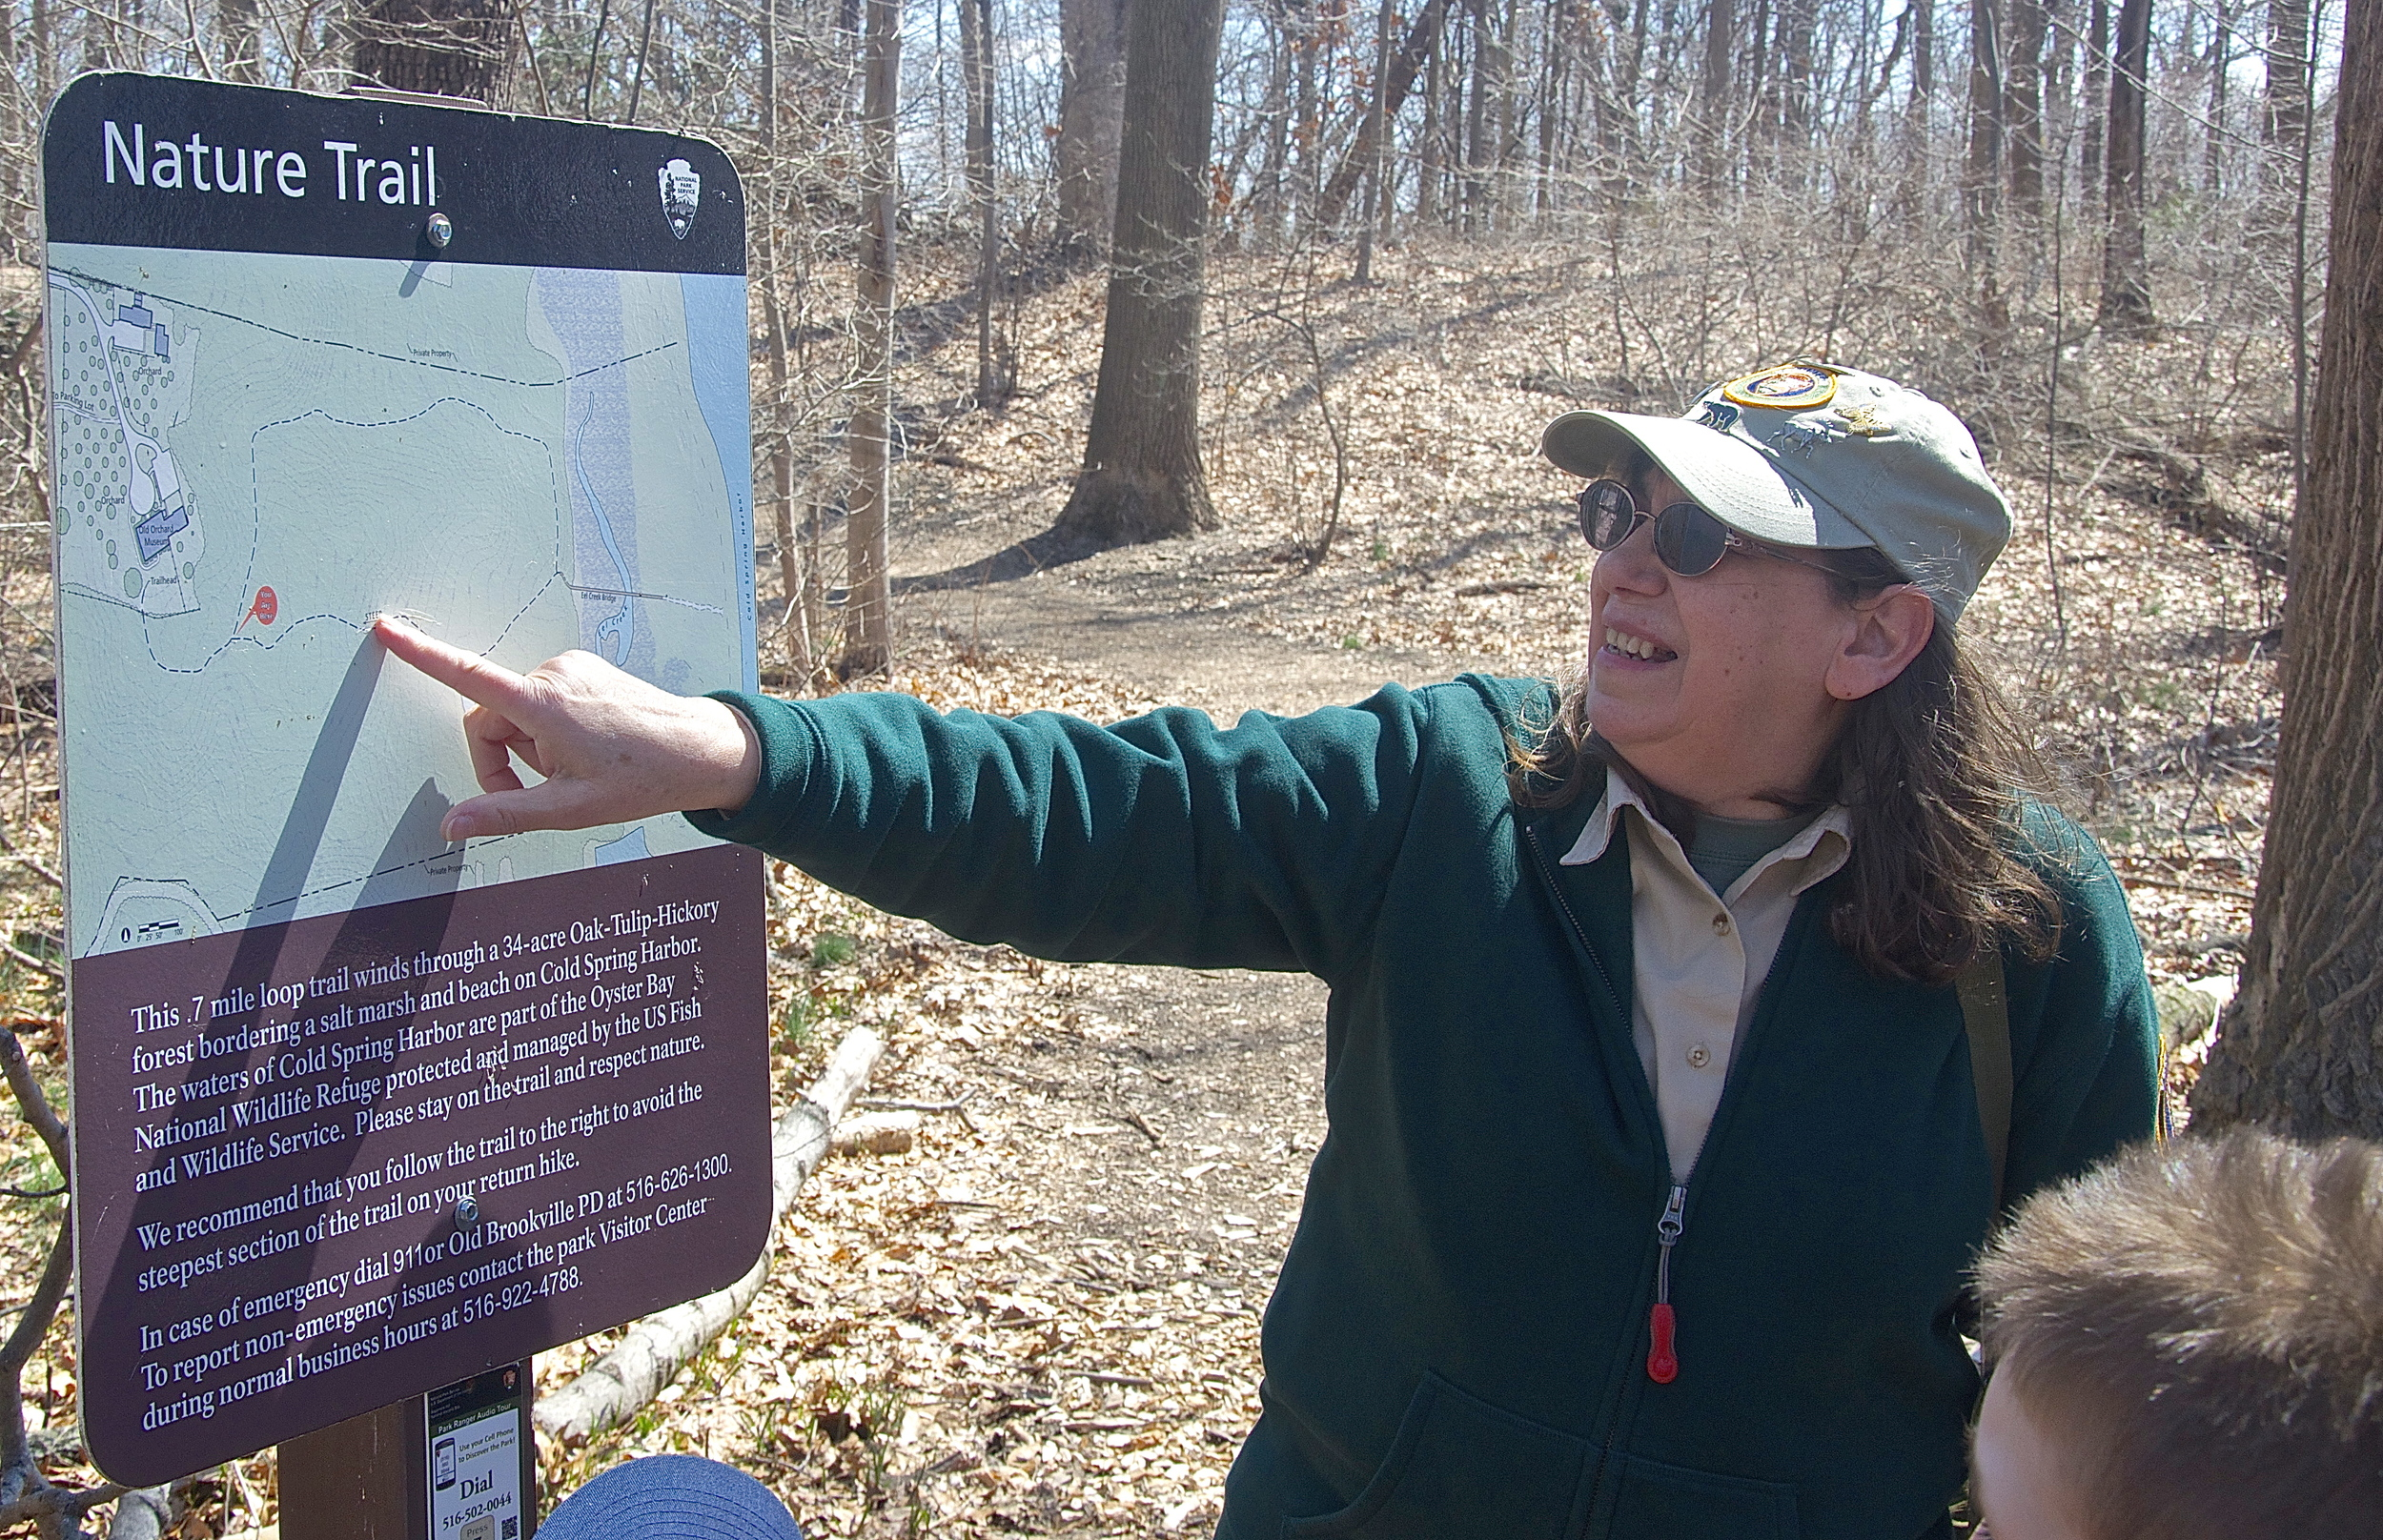 Naturalist Lois Lindberg pointed out the different trails for people that she led on a hike in the woods of Sagamore Hill Historic Park. (Photo: Joseph Kellard)